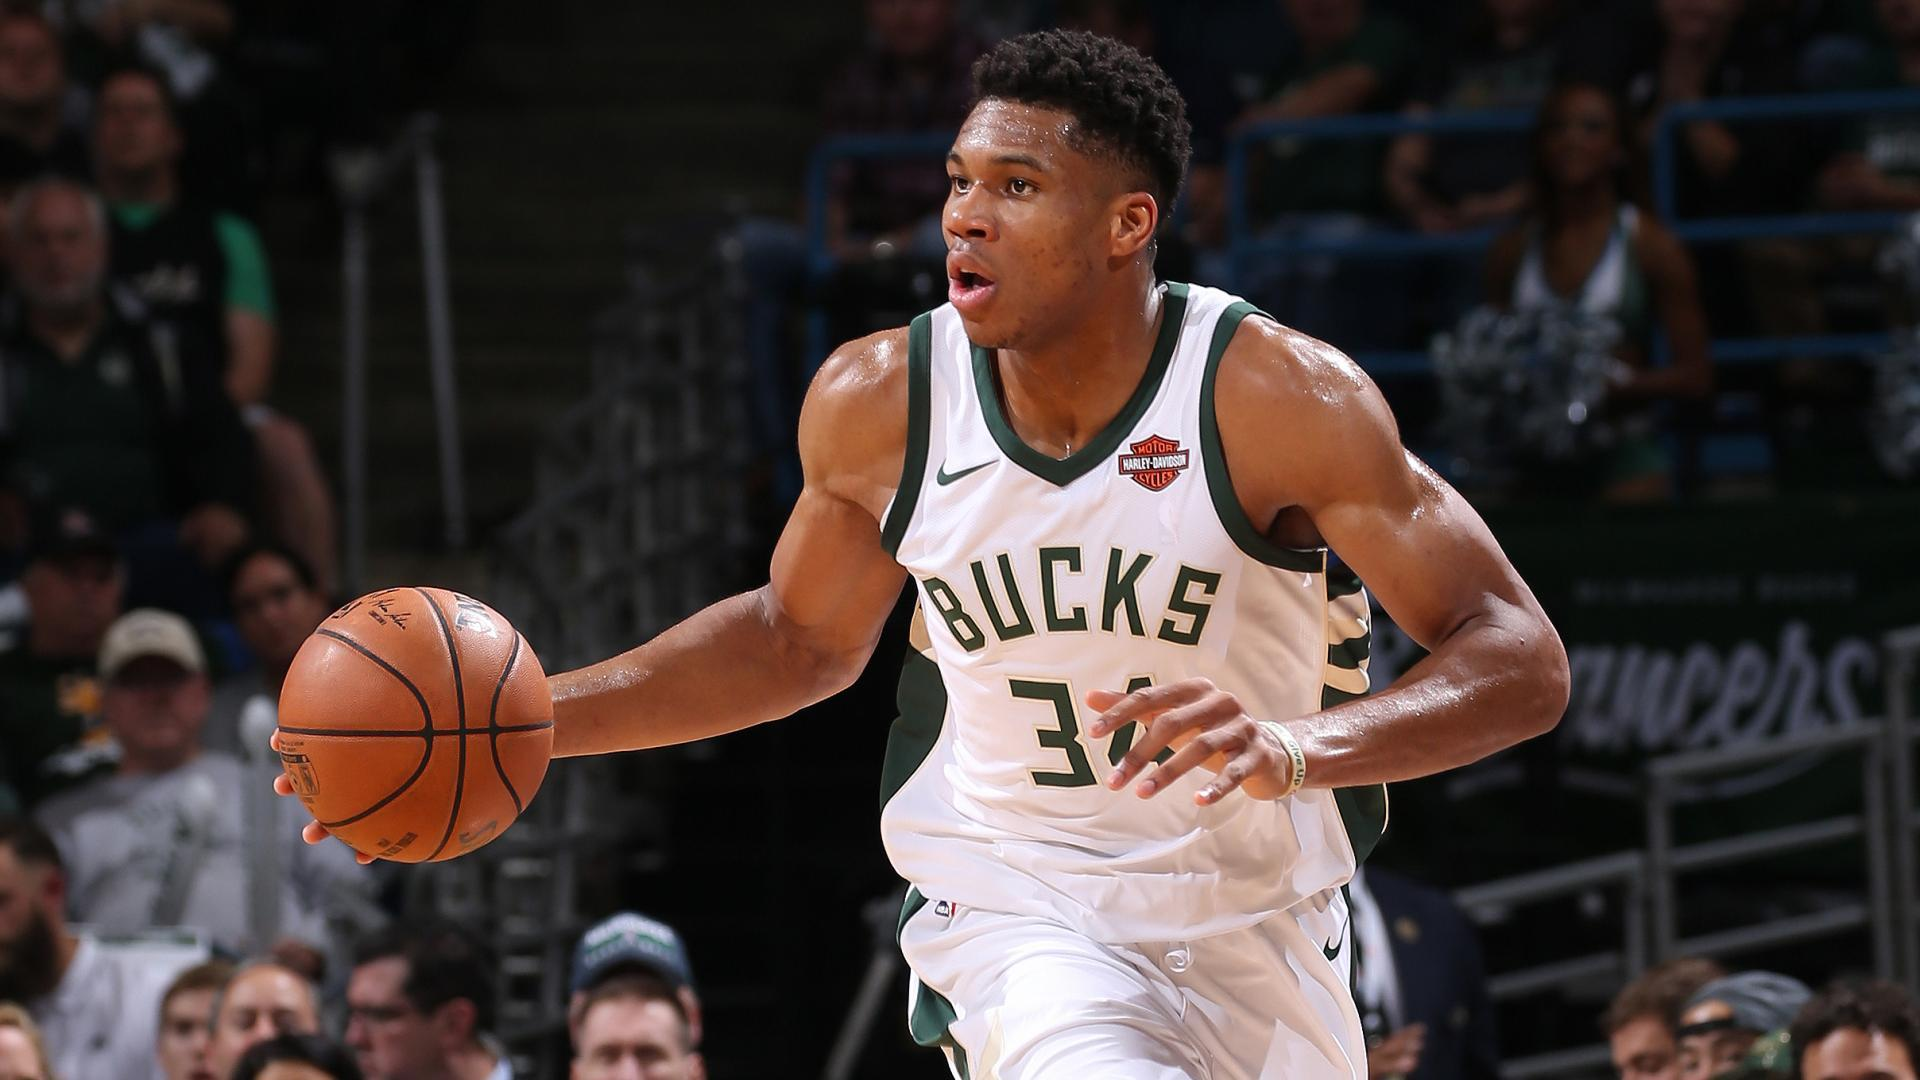 giannis antetokounmpo hd wallpaper 63778